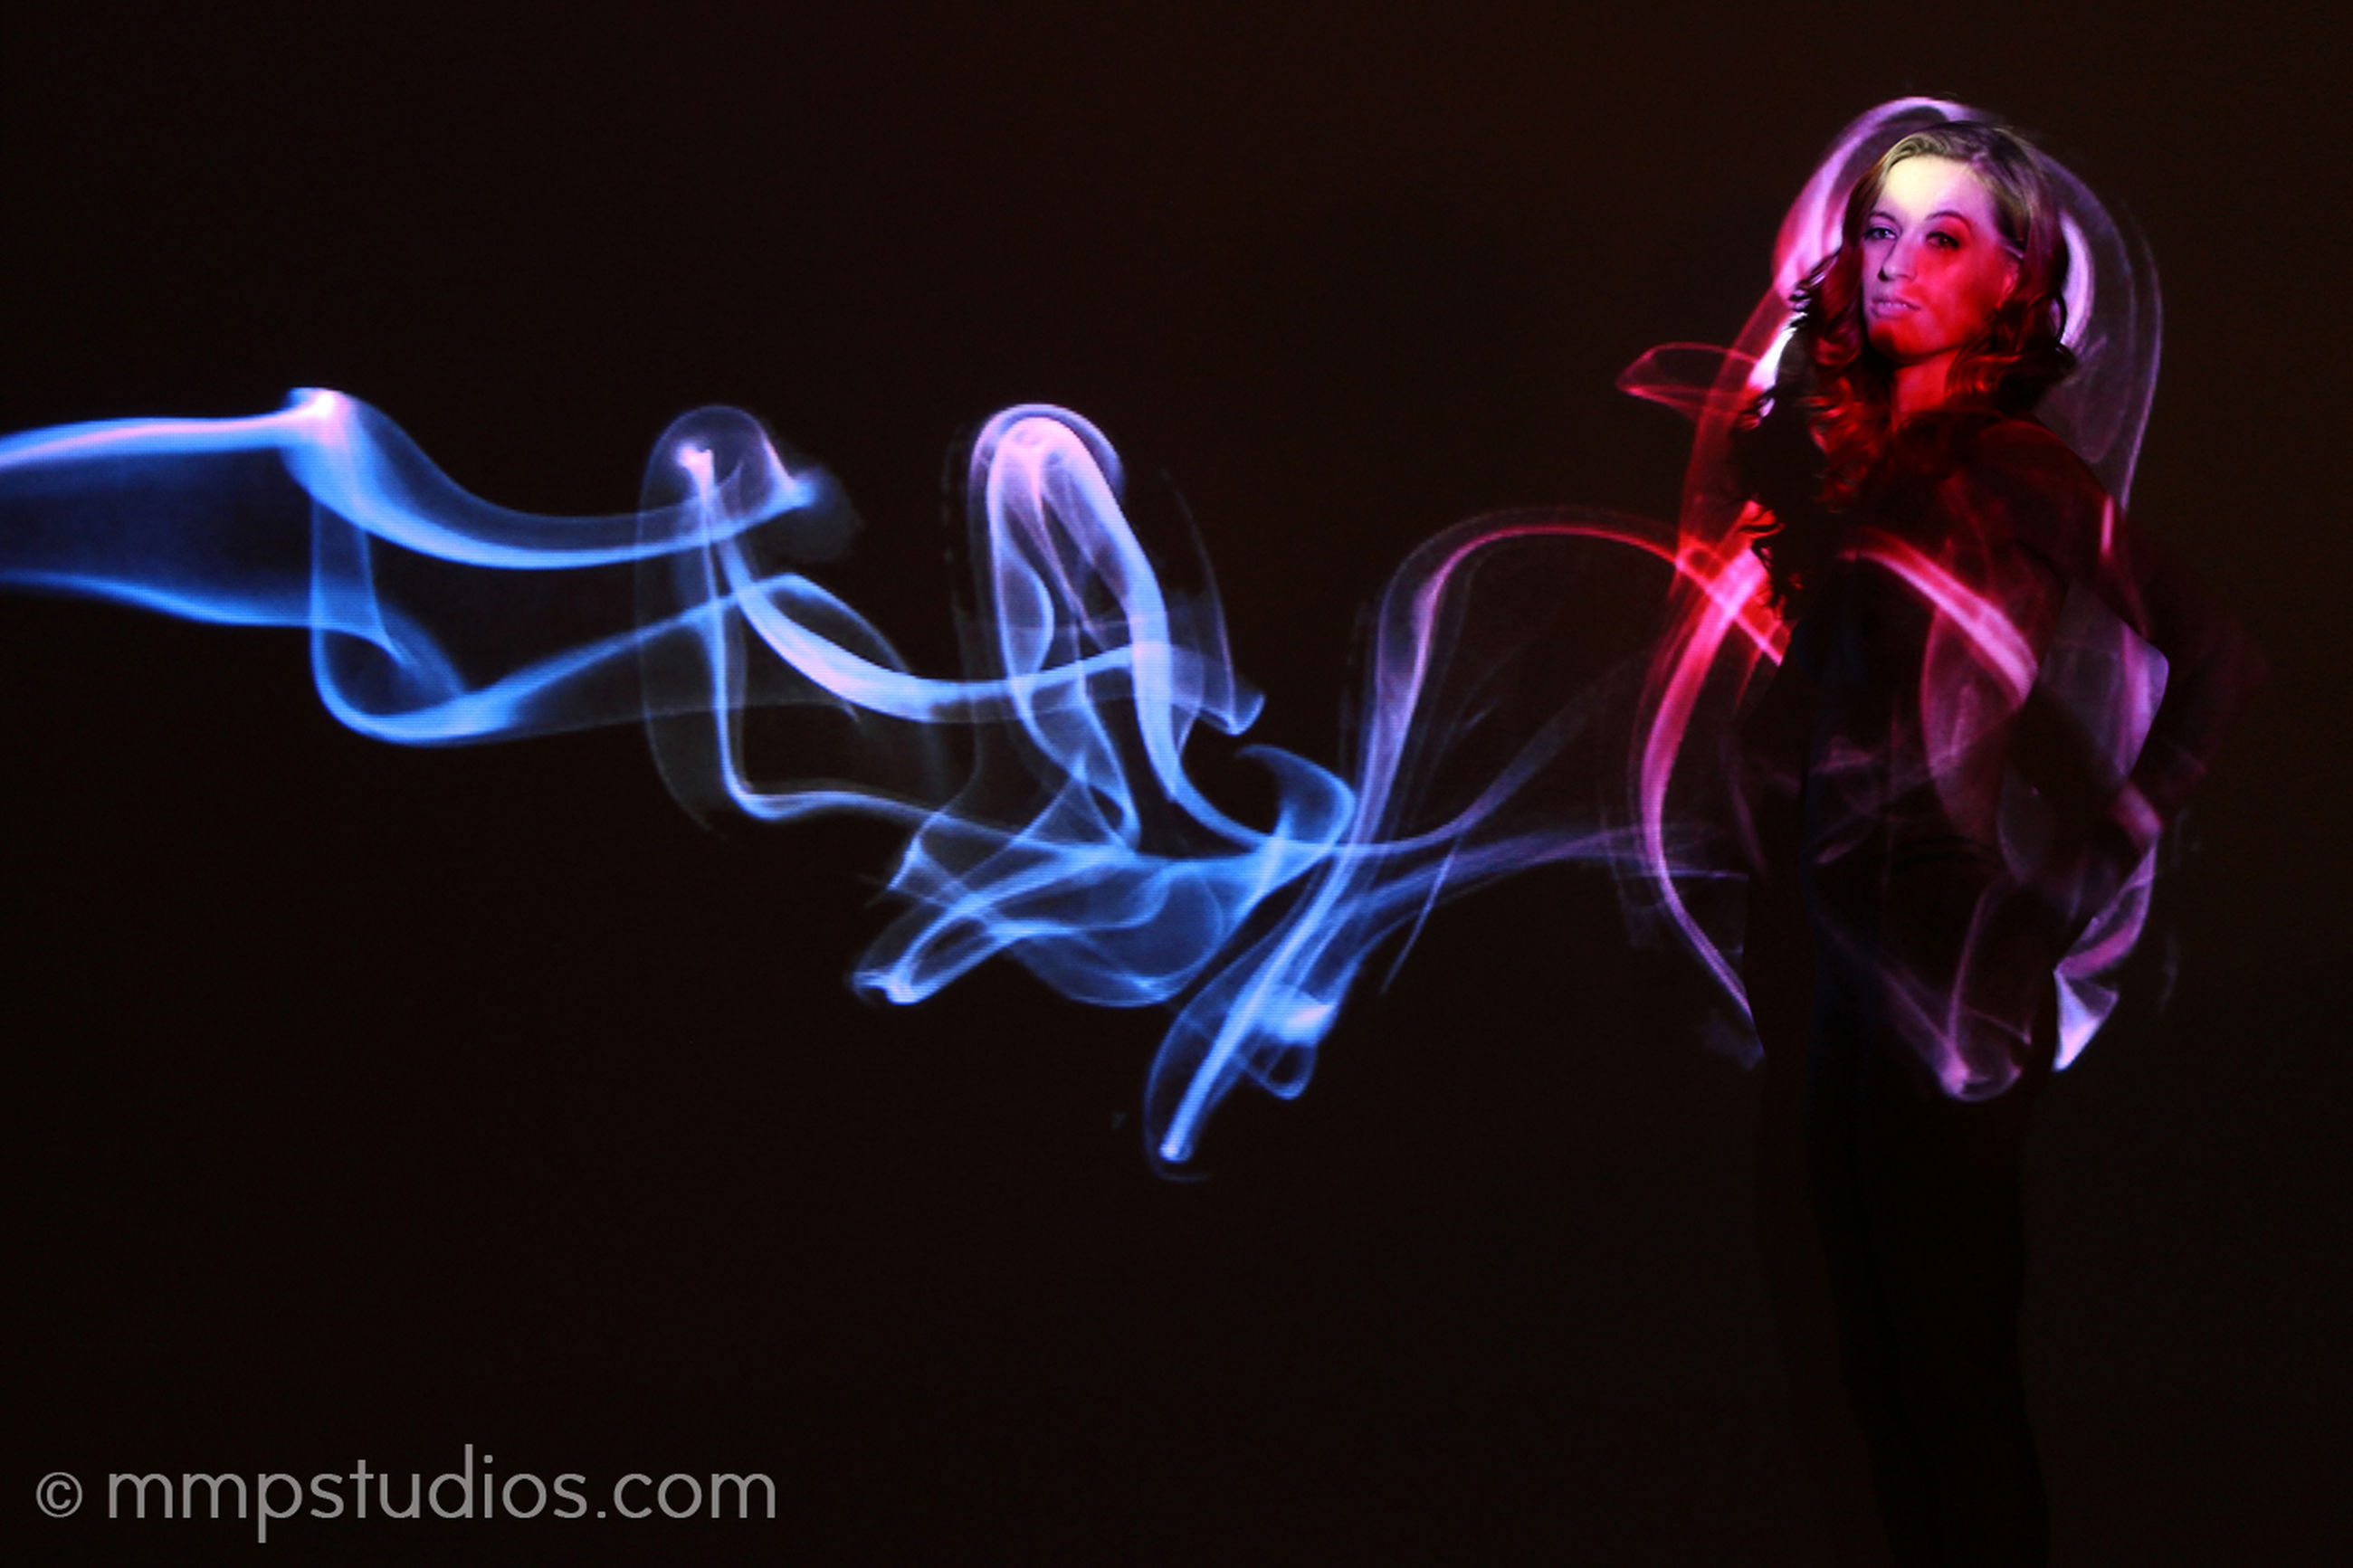 studio shot, indoors, motion, black background, smoke - physical structure, illuminated, long exposure, abstract, close-up, one person, pattern, glowing, arts culture and entertainment, creativity, young adult, light - natural phenomenon, nature, women, art and craft, flowing